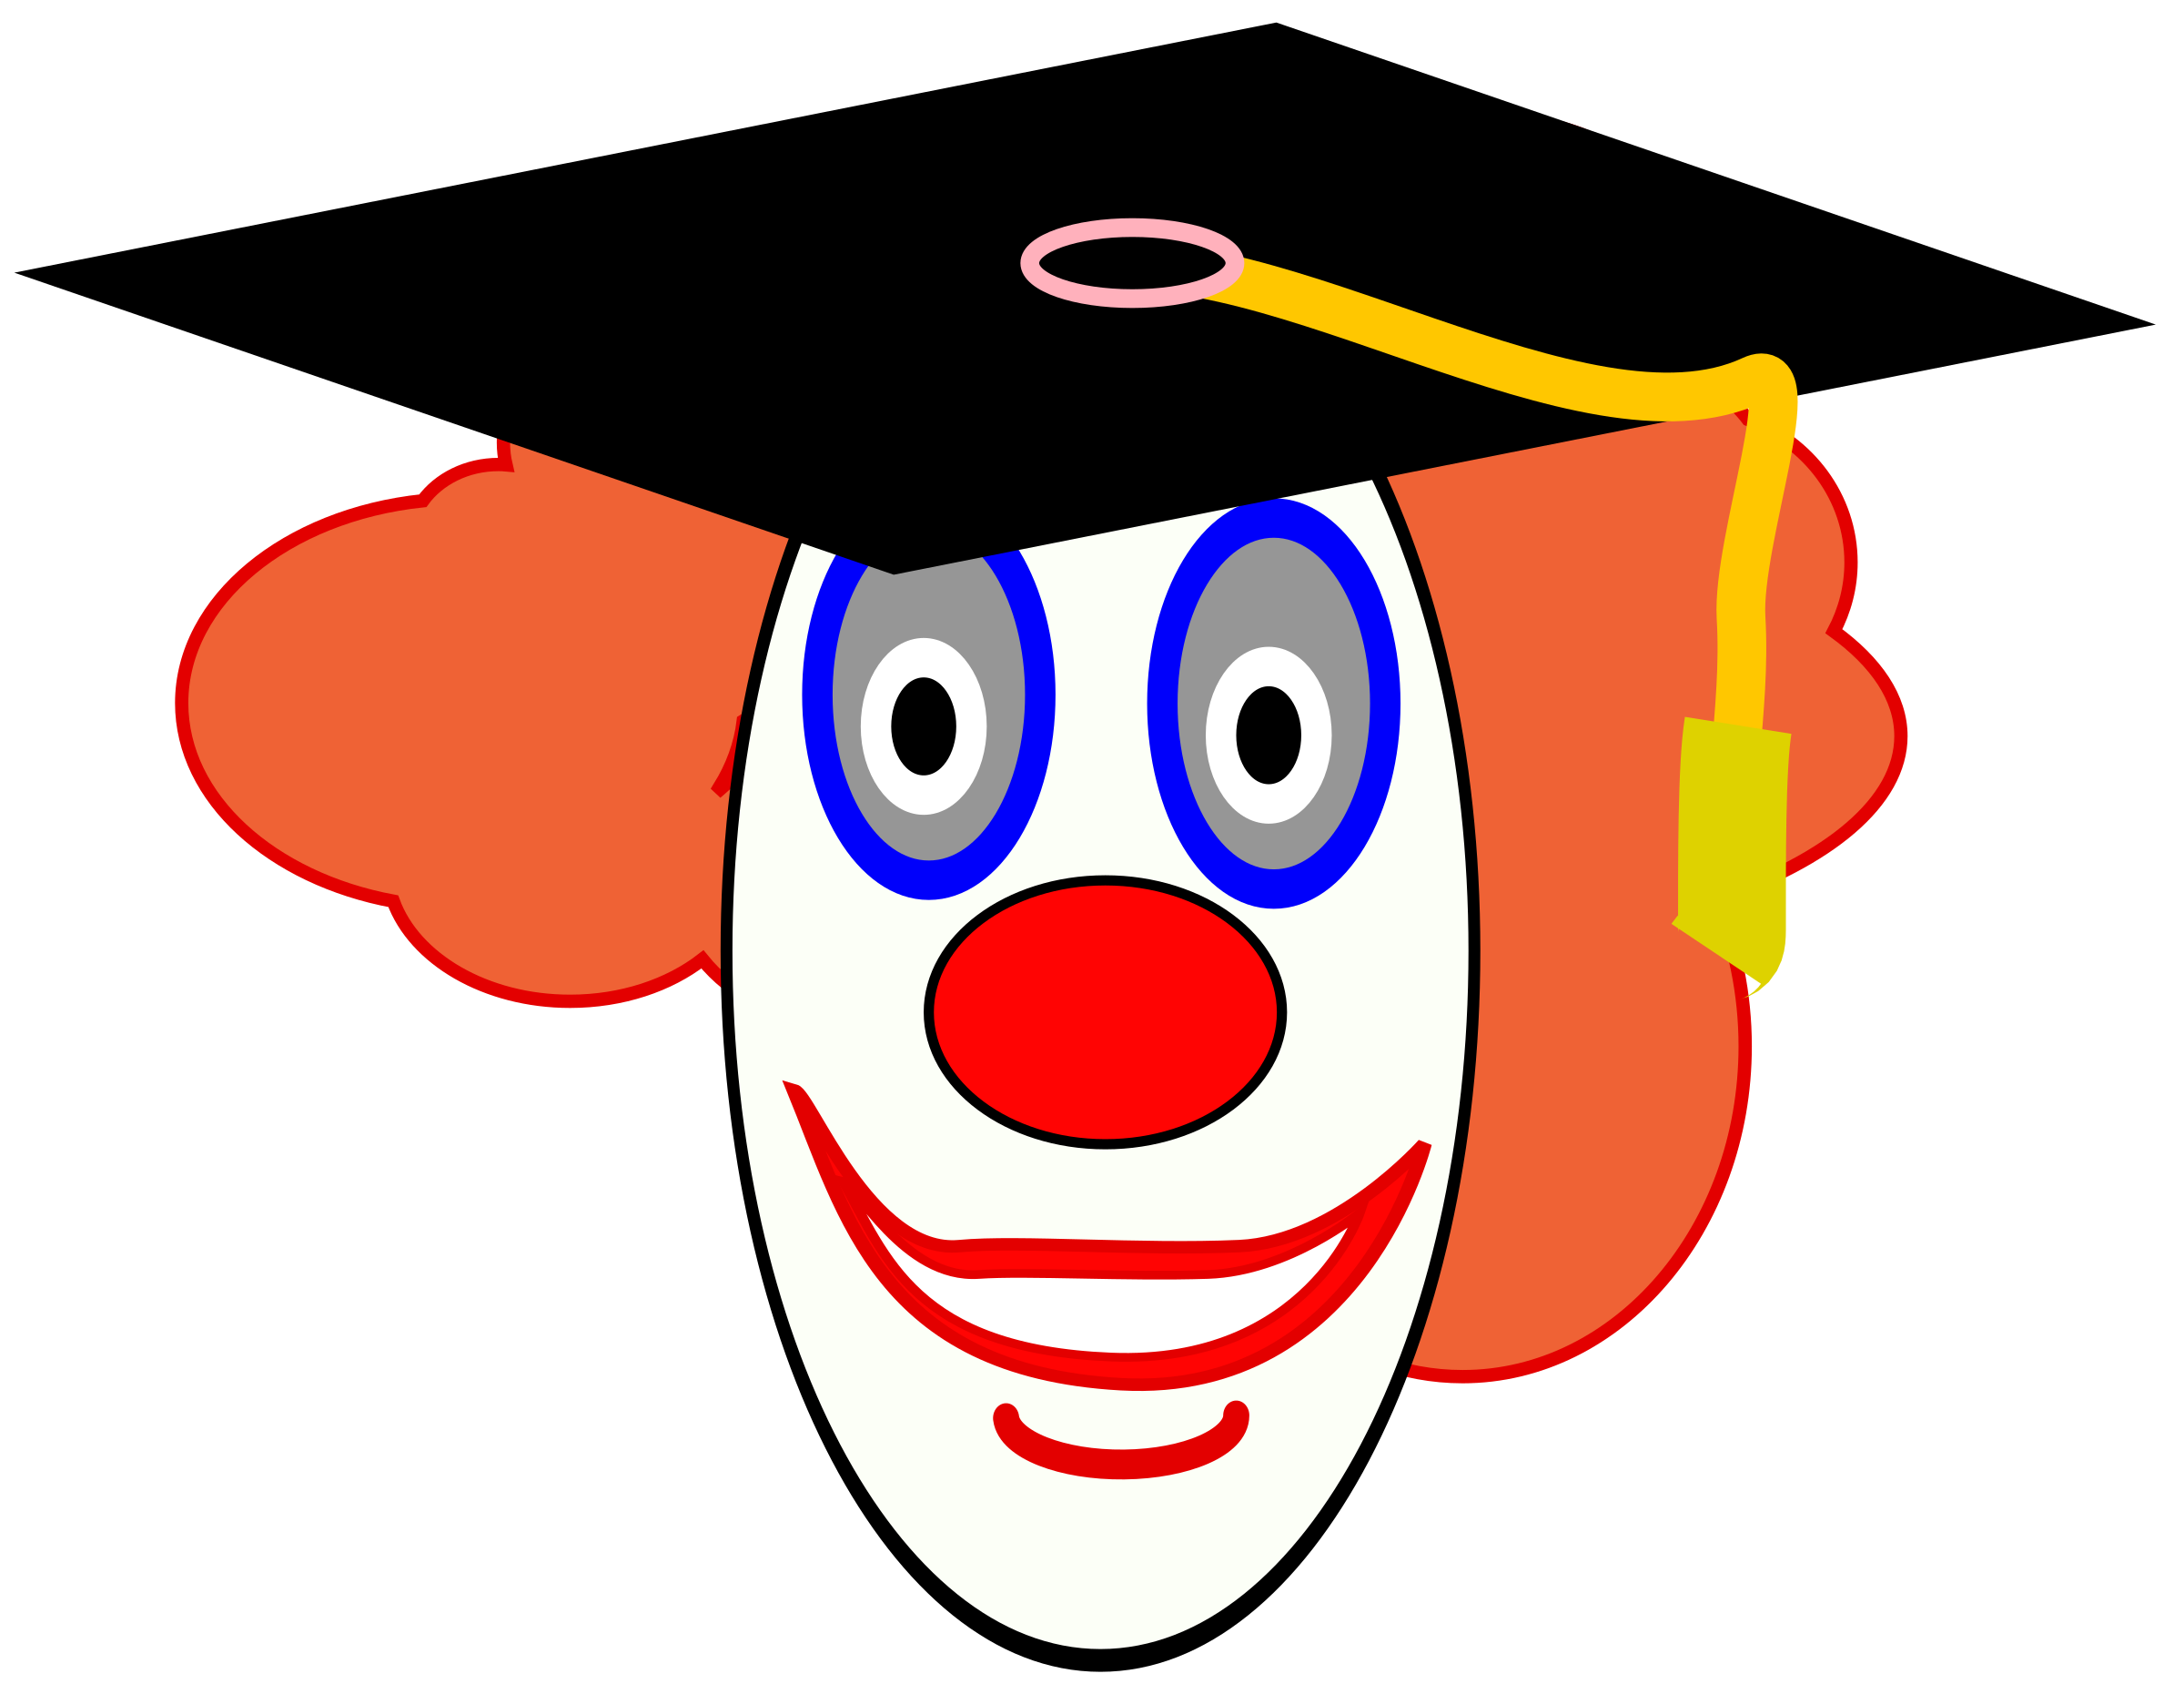 Clown clipart clown face. School graduate big image